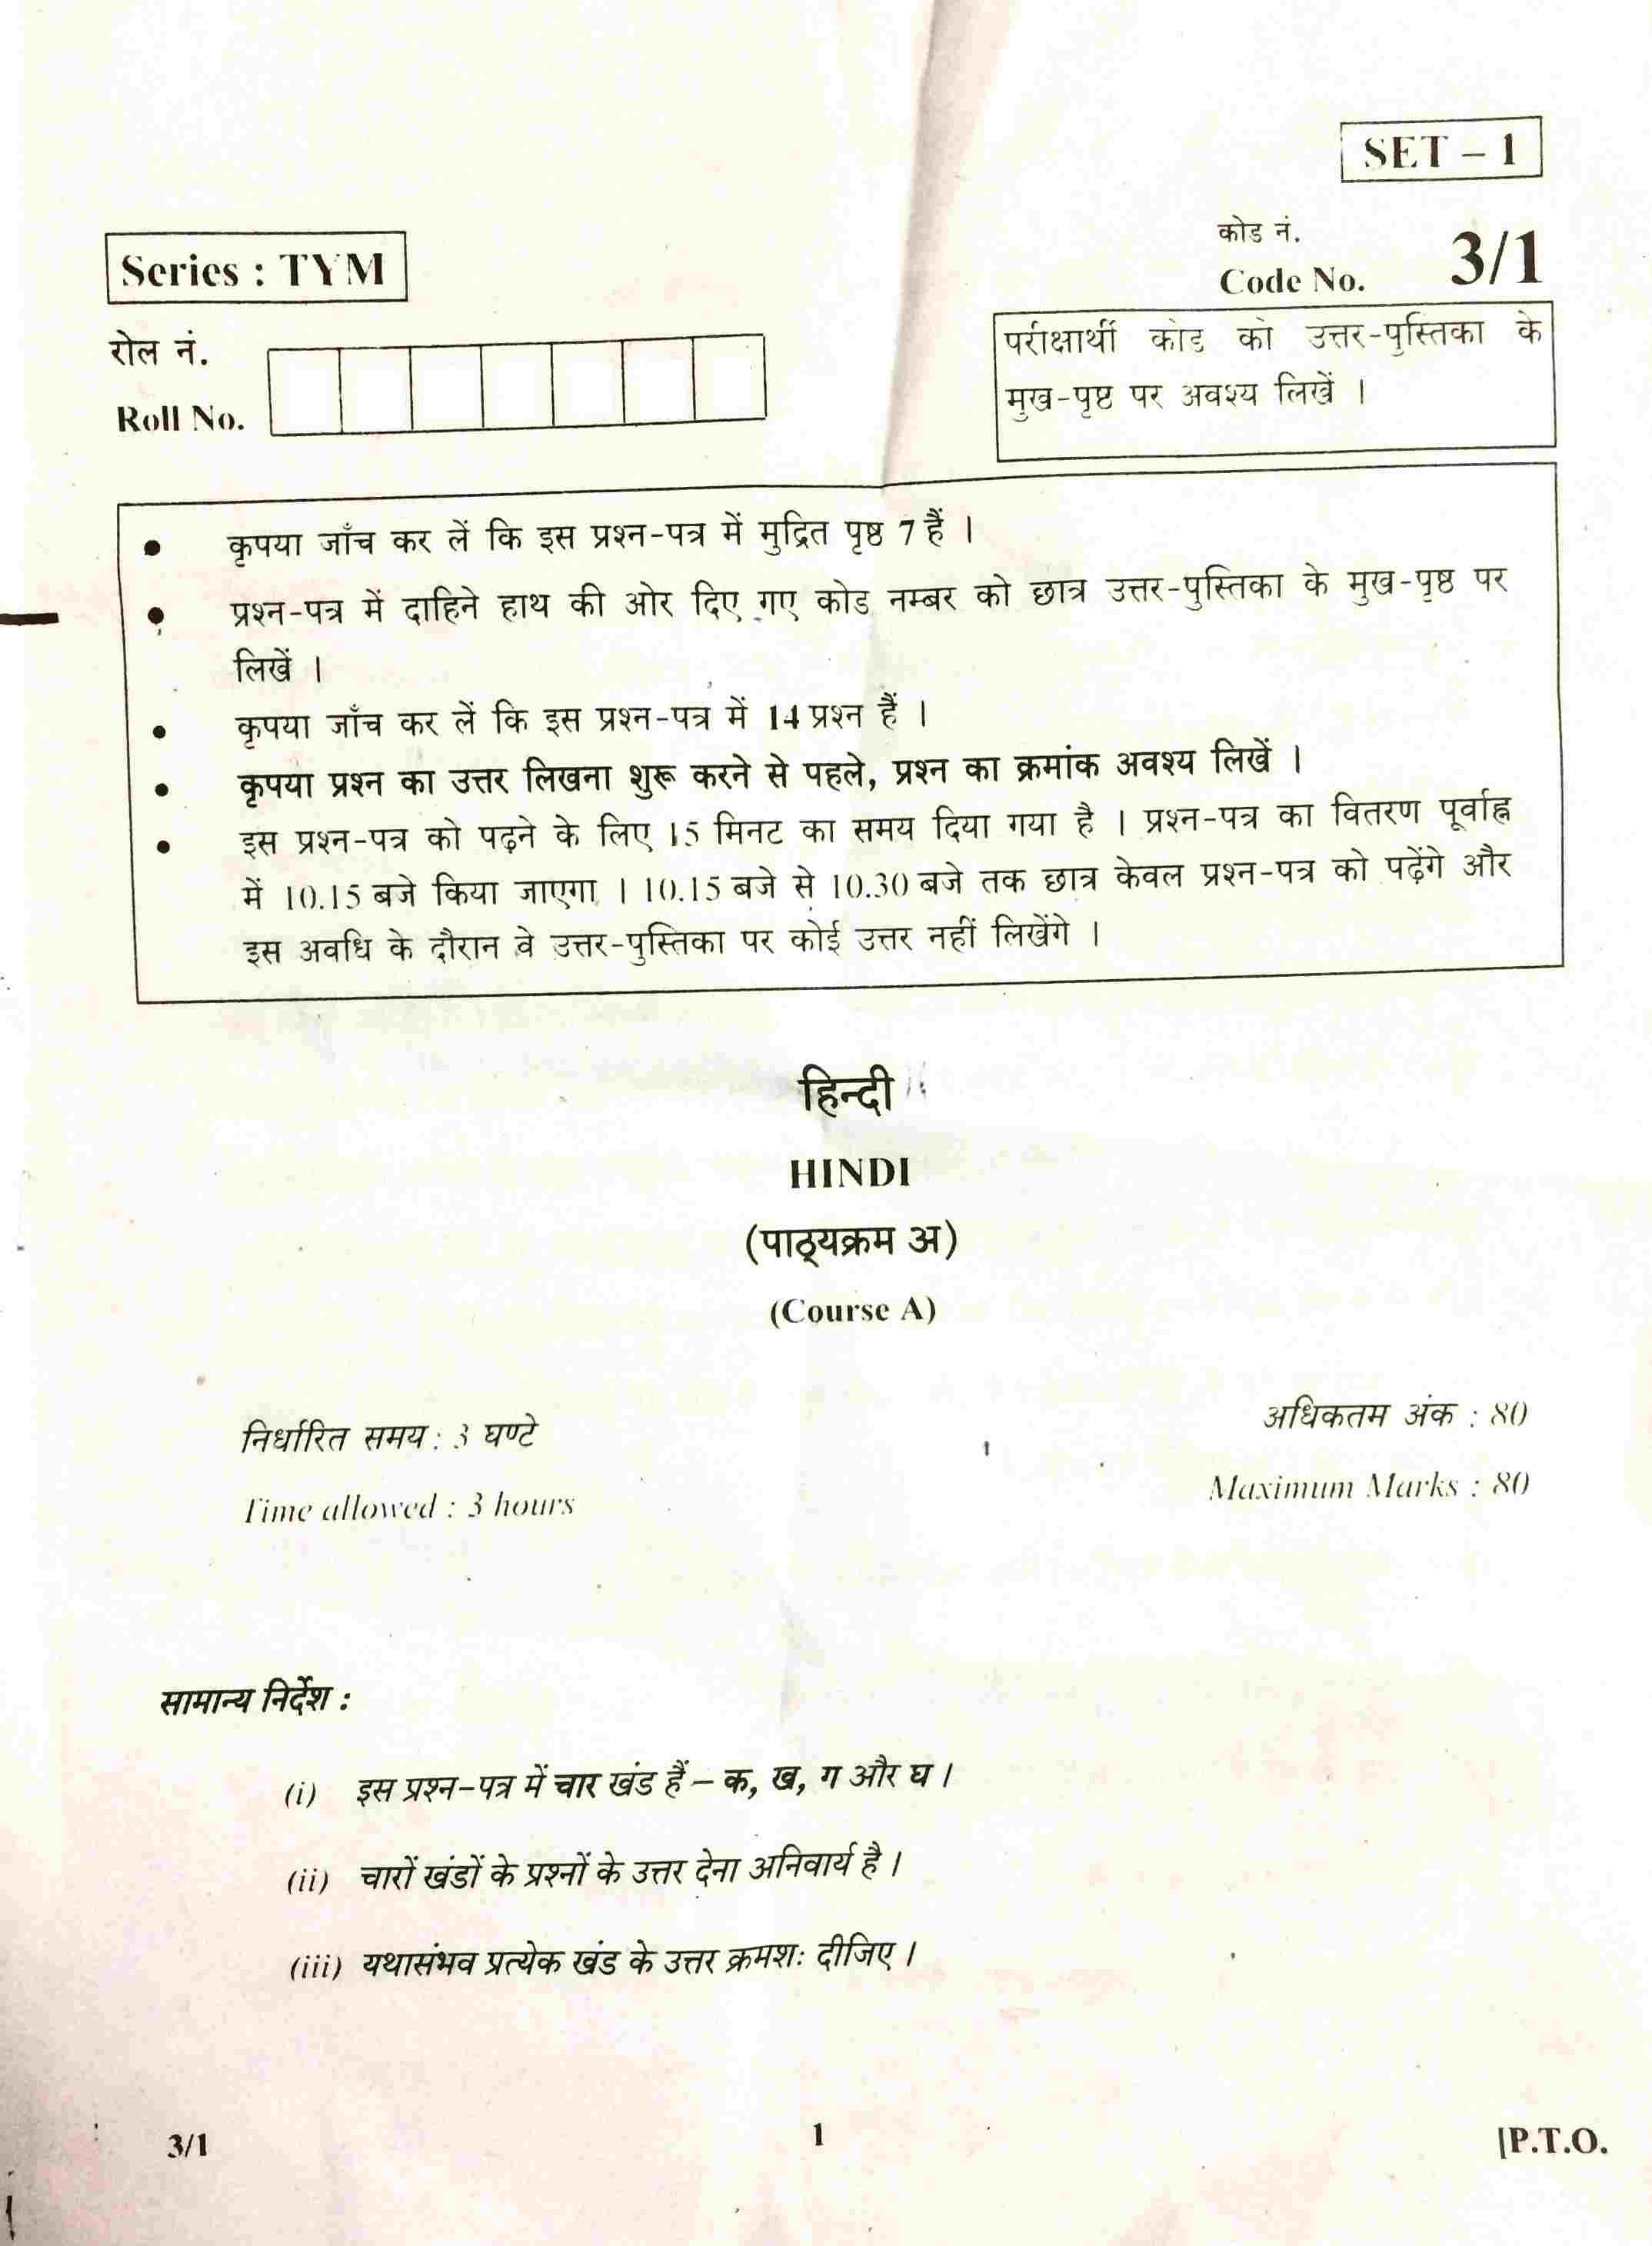 CBSE Class 10 Hindi (Course A) Question Paper 2018: Page 1